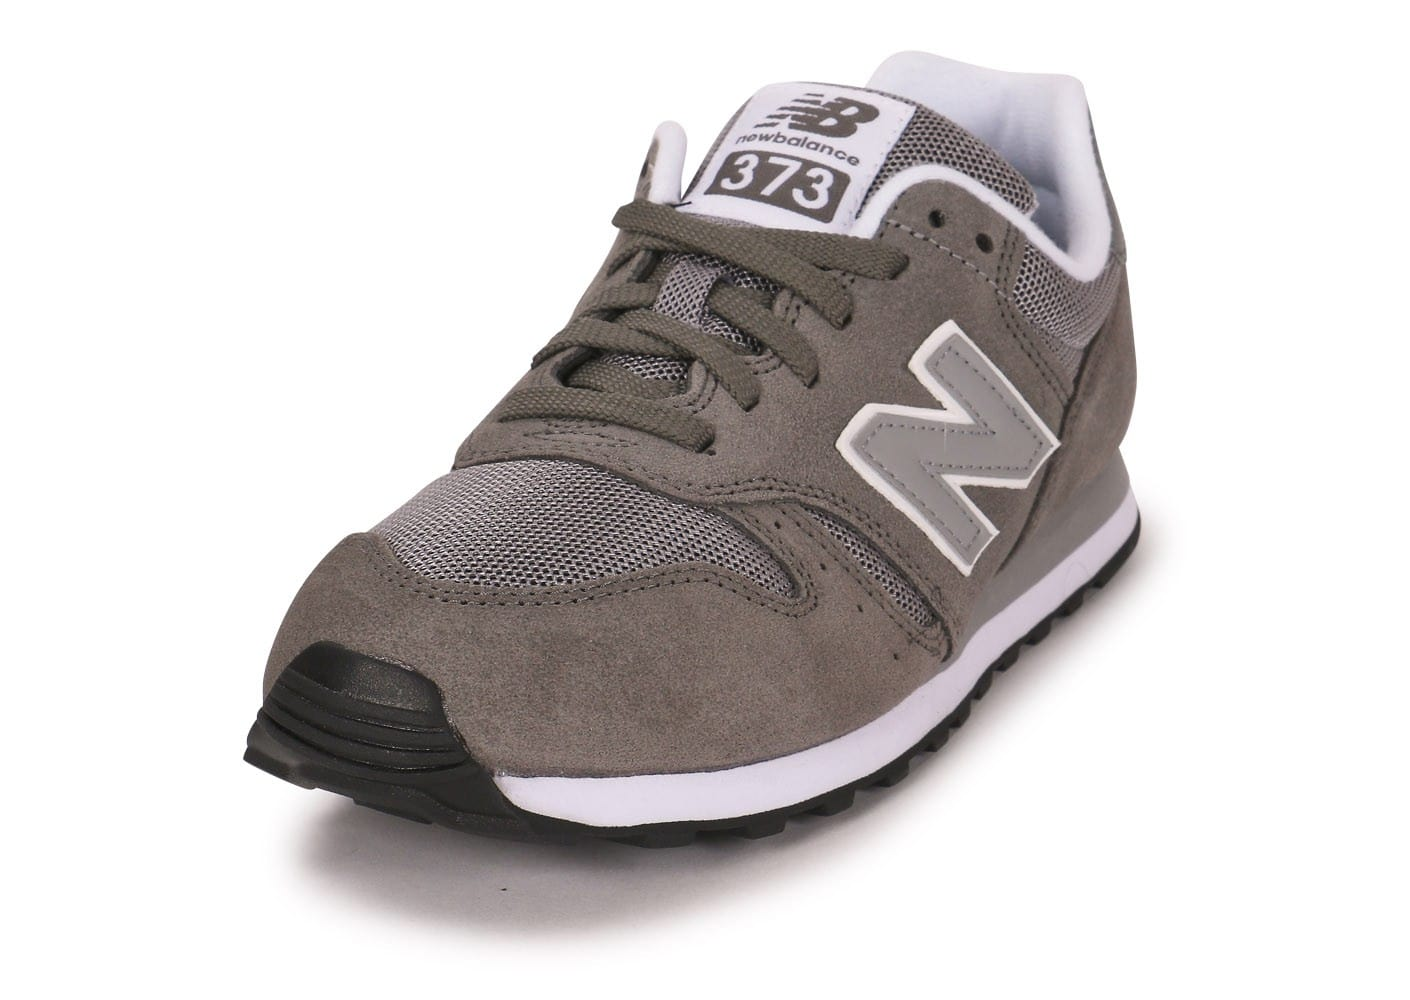 new balance ml373 grise chaussures baskets homme chausport. Black Bedroom Furniture Sets. Home Design Ideas